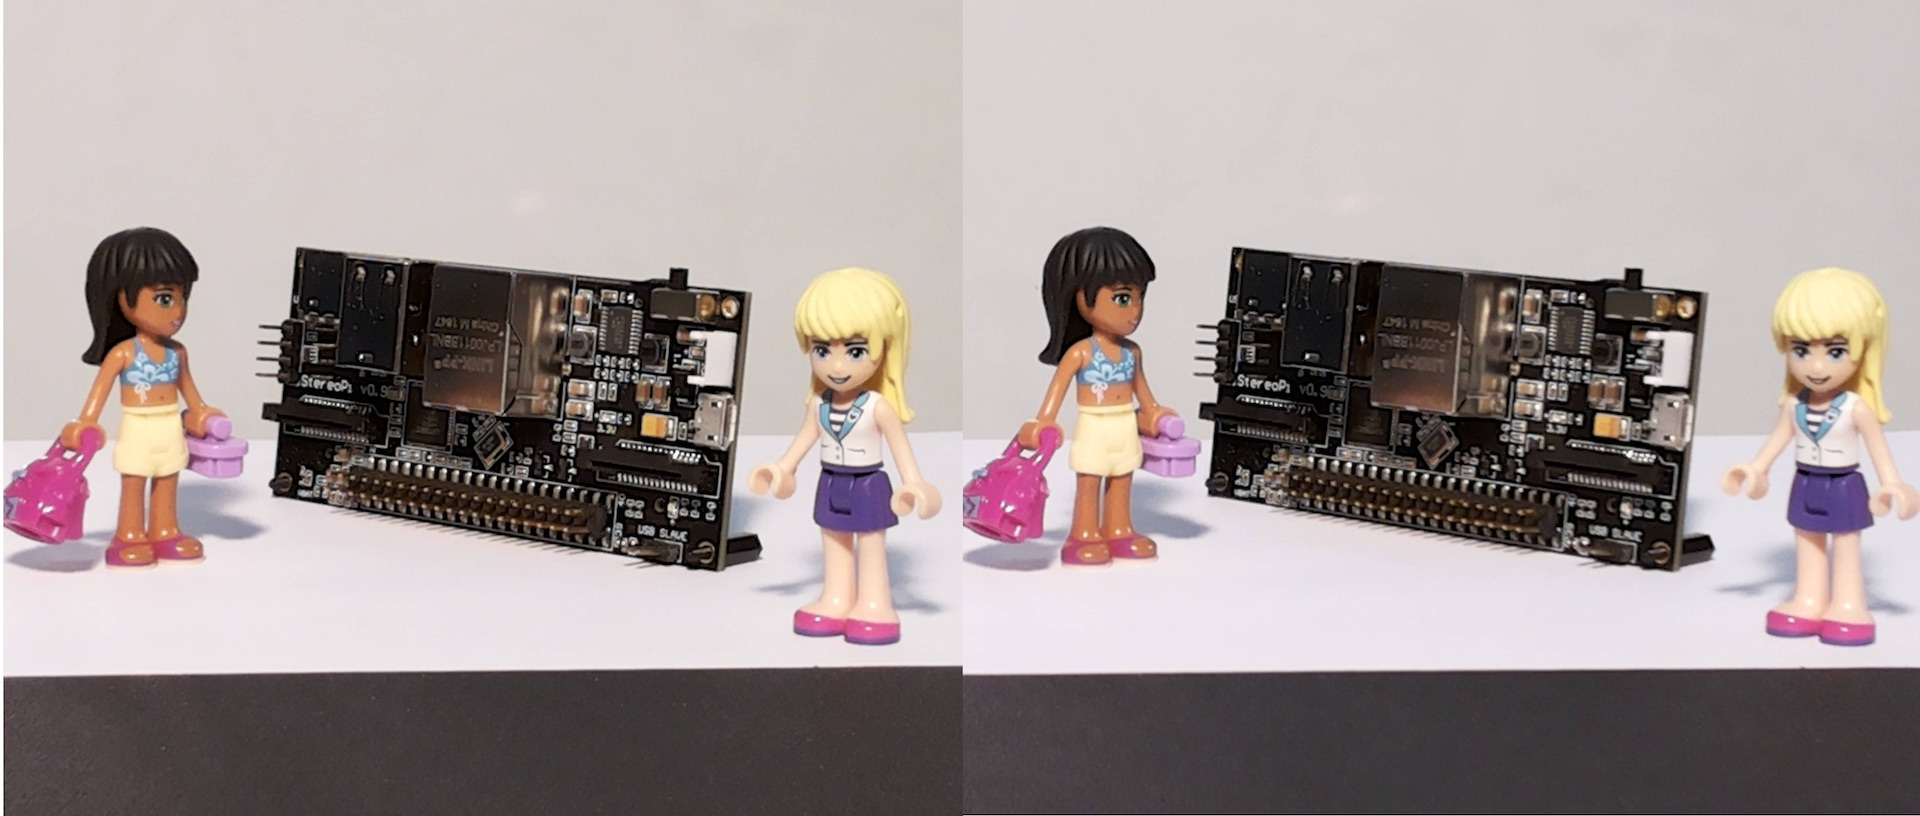 the stereopi and lego girls, r-l stereoscopic image